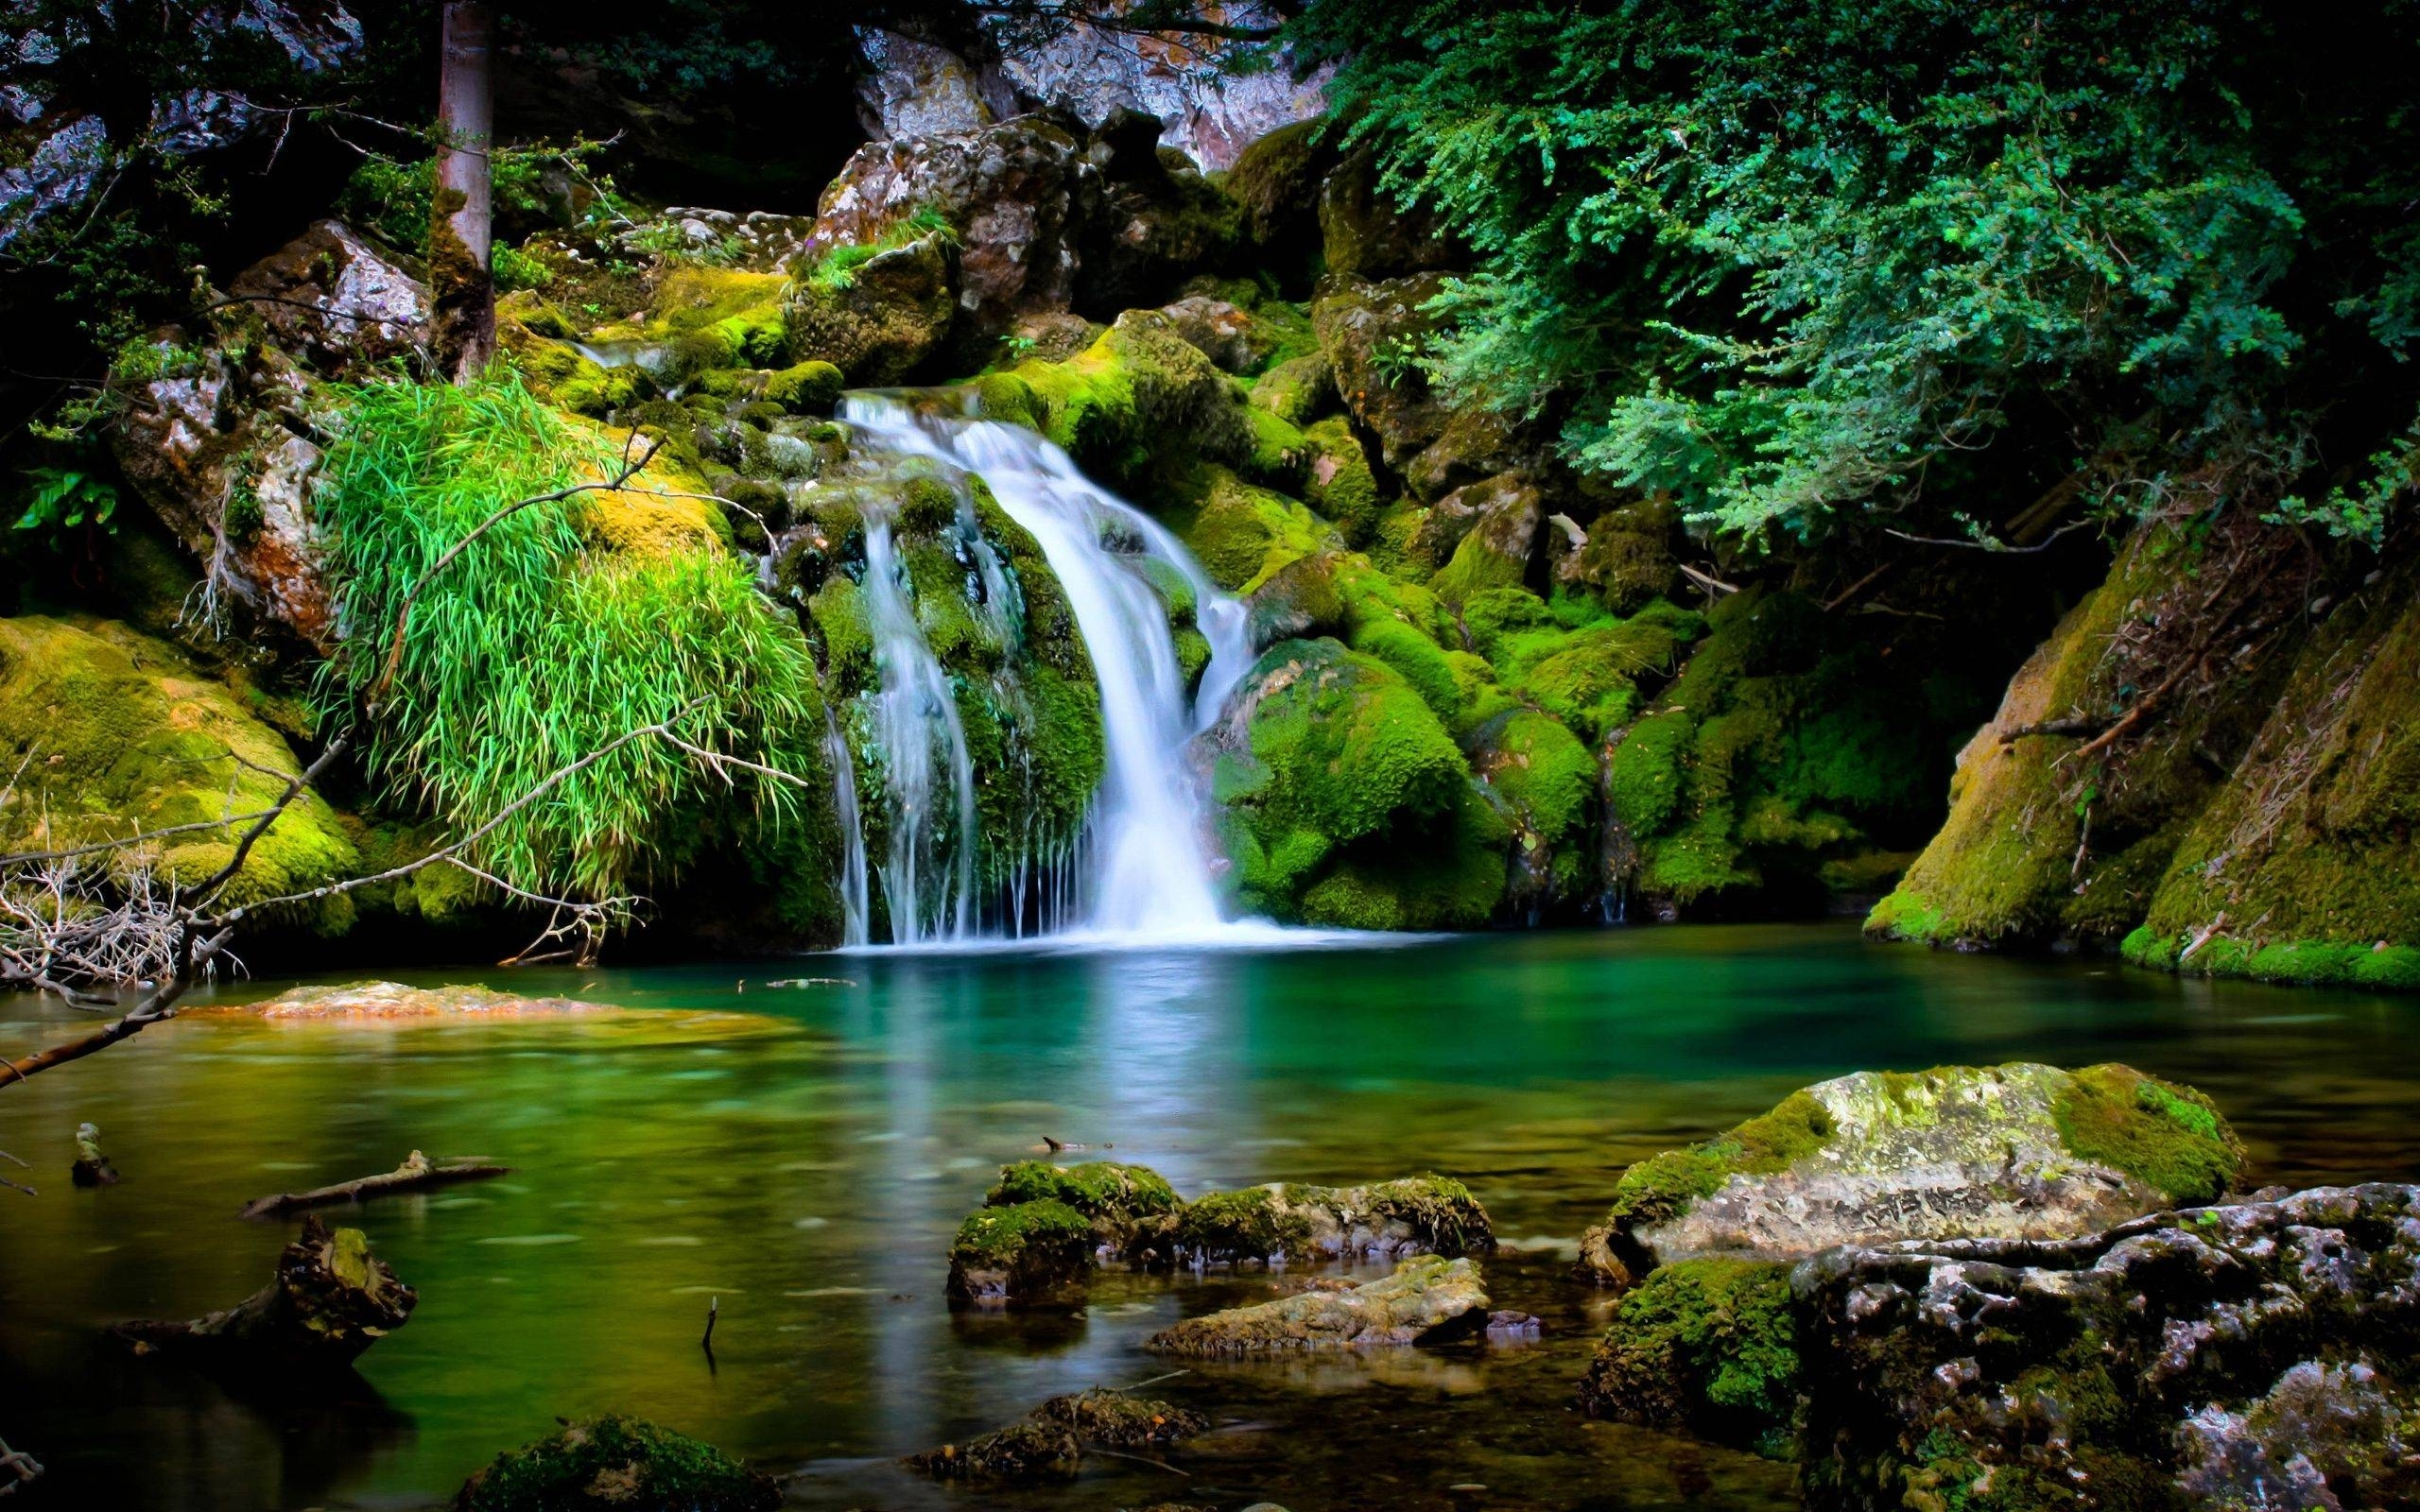 waterfall in hd 1080p on wallpaper nature of mobile phones